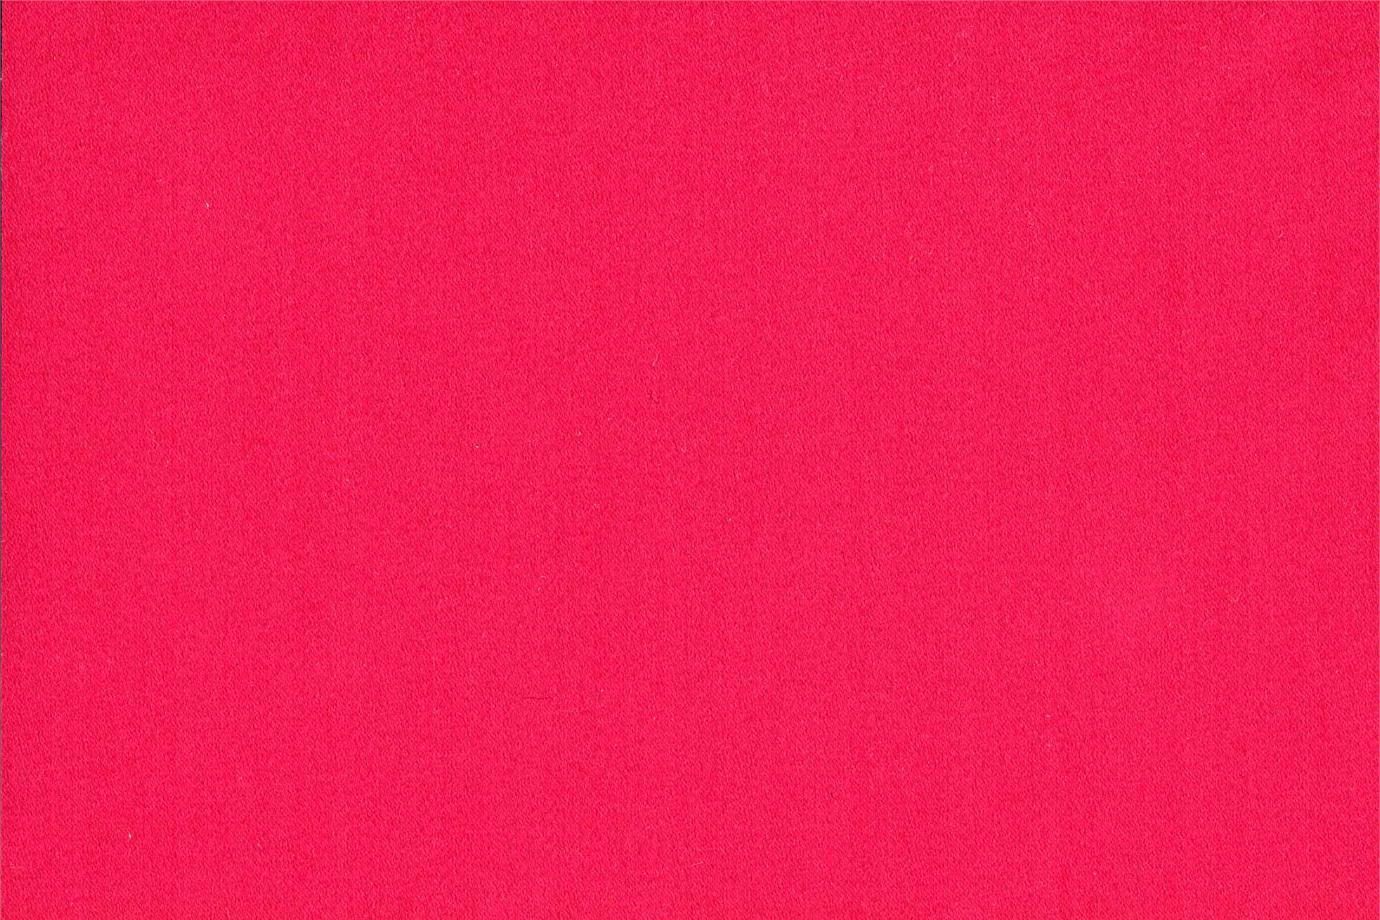 Home Decor Interior Design J1594 Meo Patacca 016 Fuxia Brochier